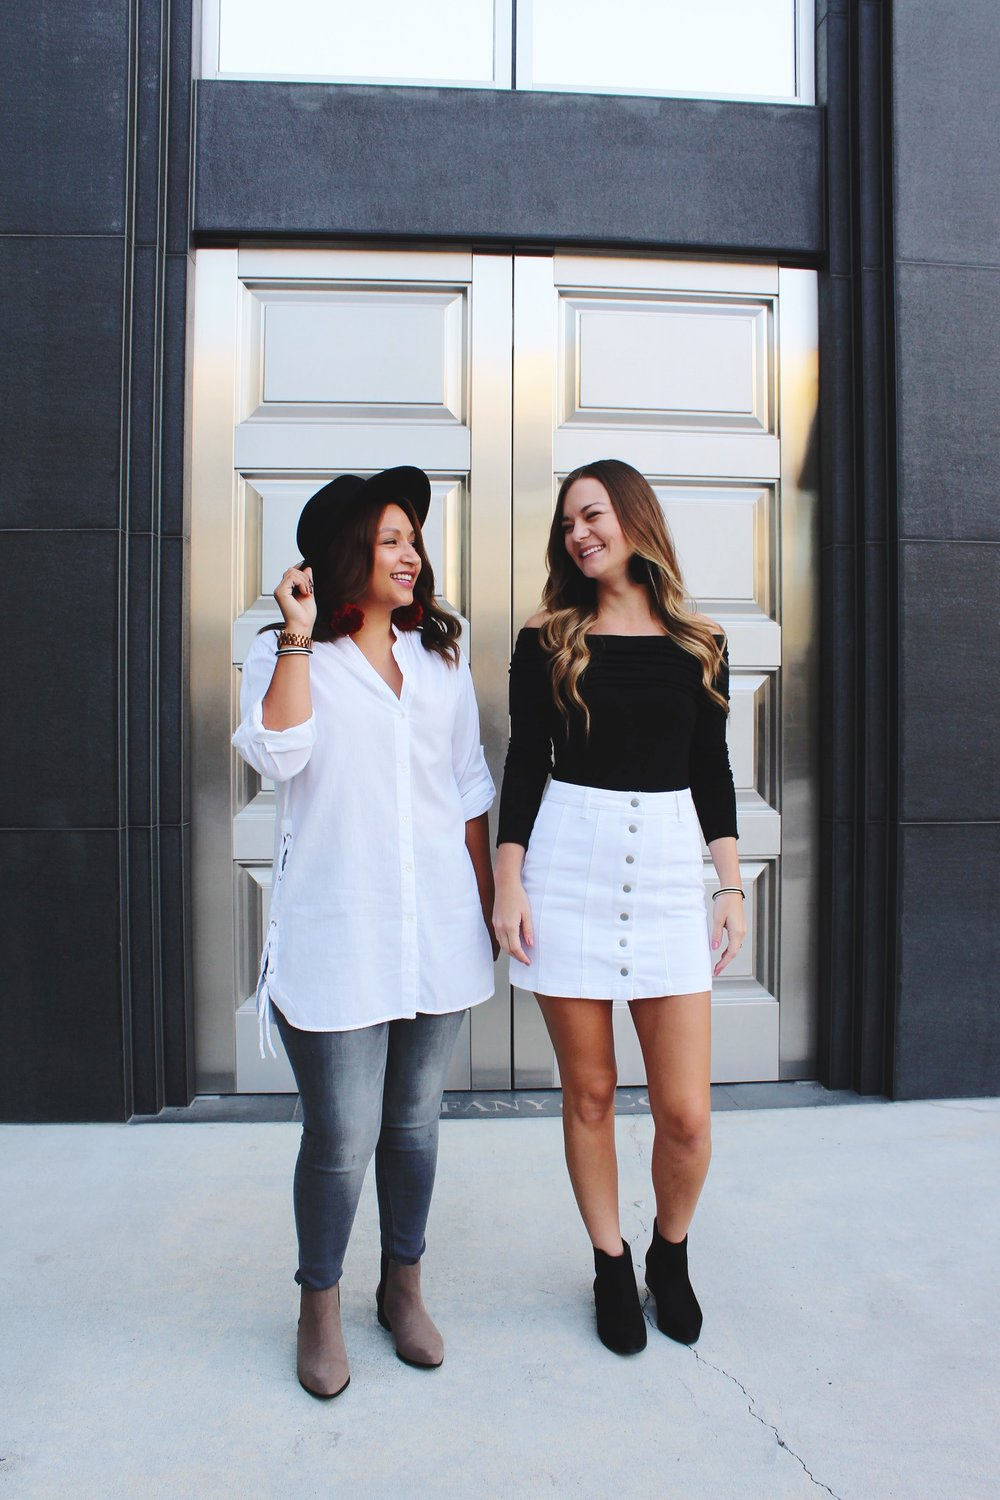 Tiffany's Store Front at Roseville Galleria/ Labor Day Outfits/ Zara Cotton Shirt/ Express Grey Jeans/ Black off the shoulder top/ White front button up skirt